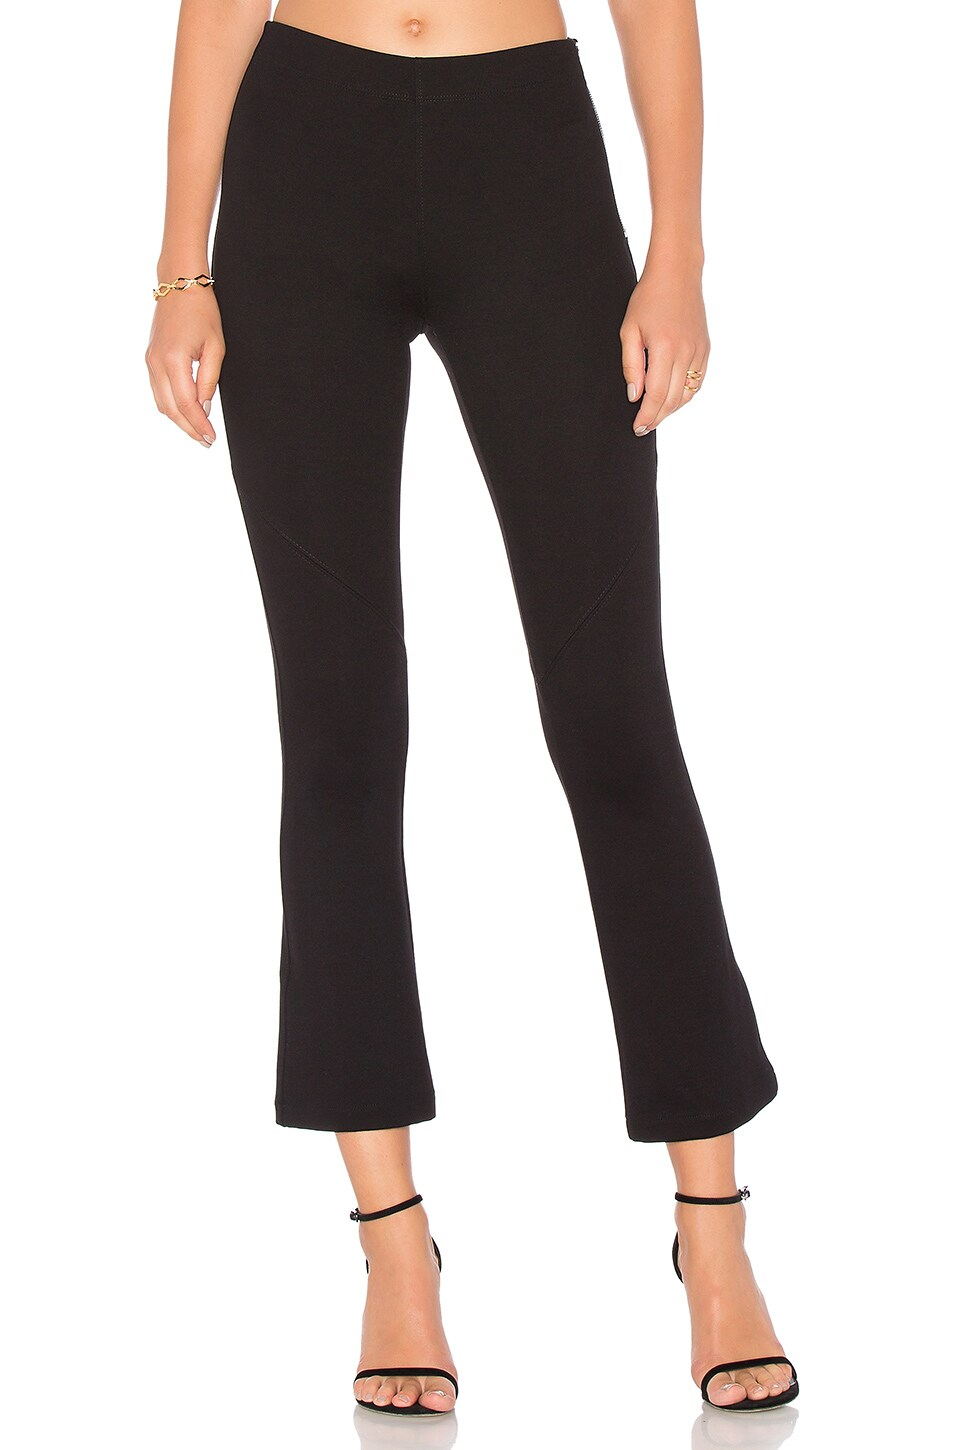 David Lerner Whitman Ponte Pant in Classic Black